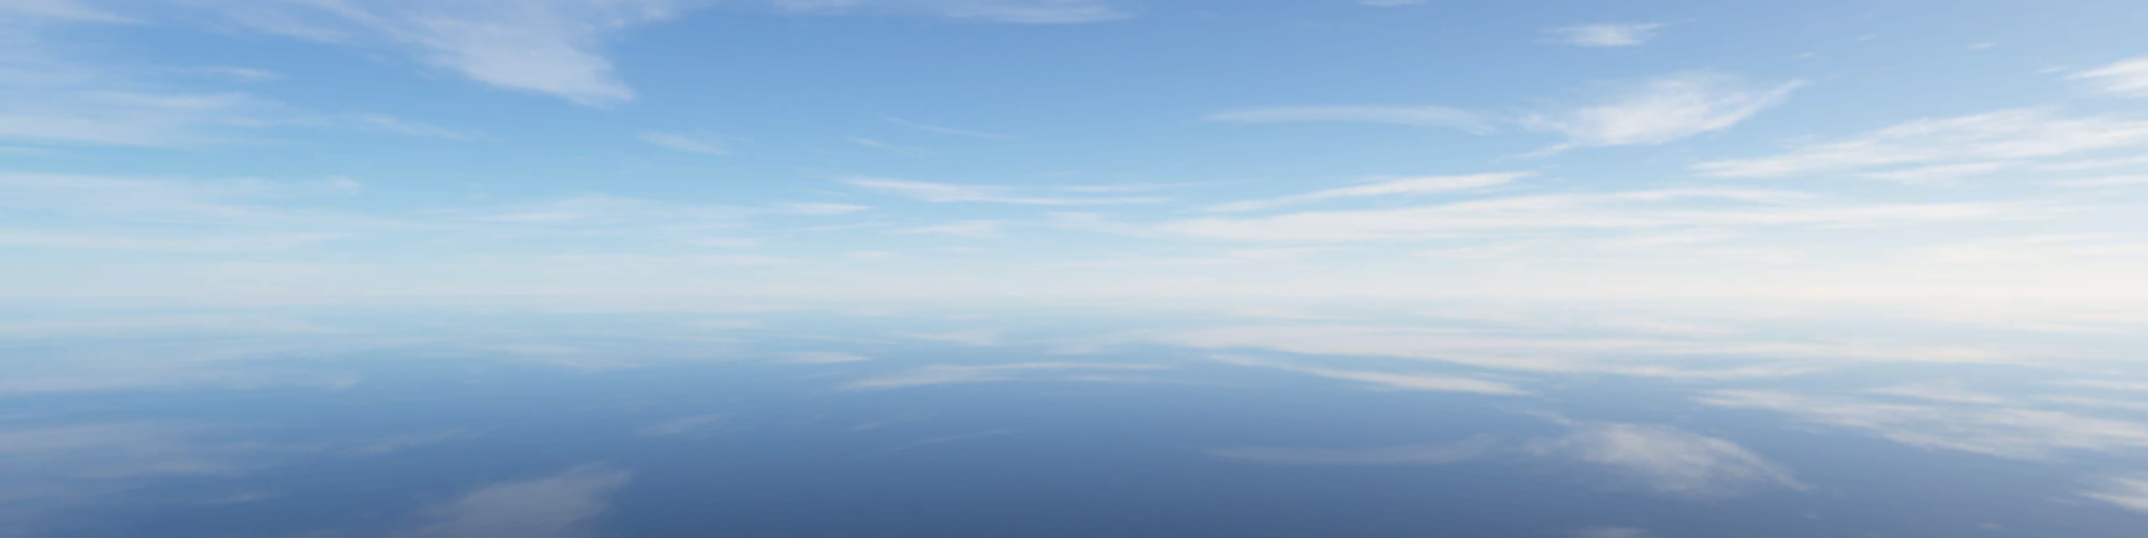 OH NO NOT THE DEFAULT LOOKING SKYBOX!